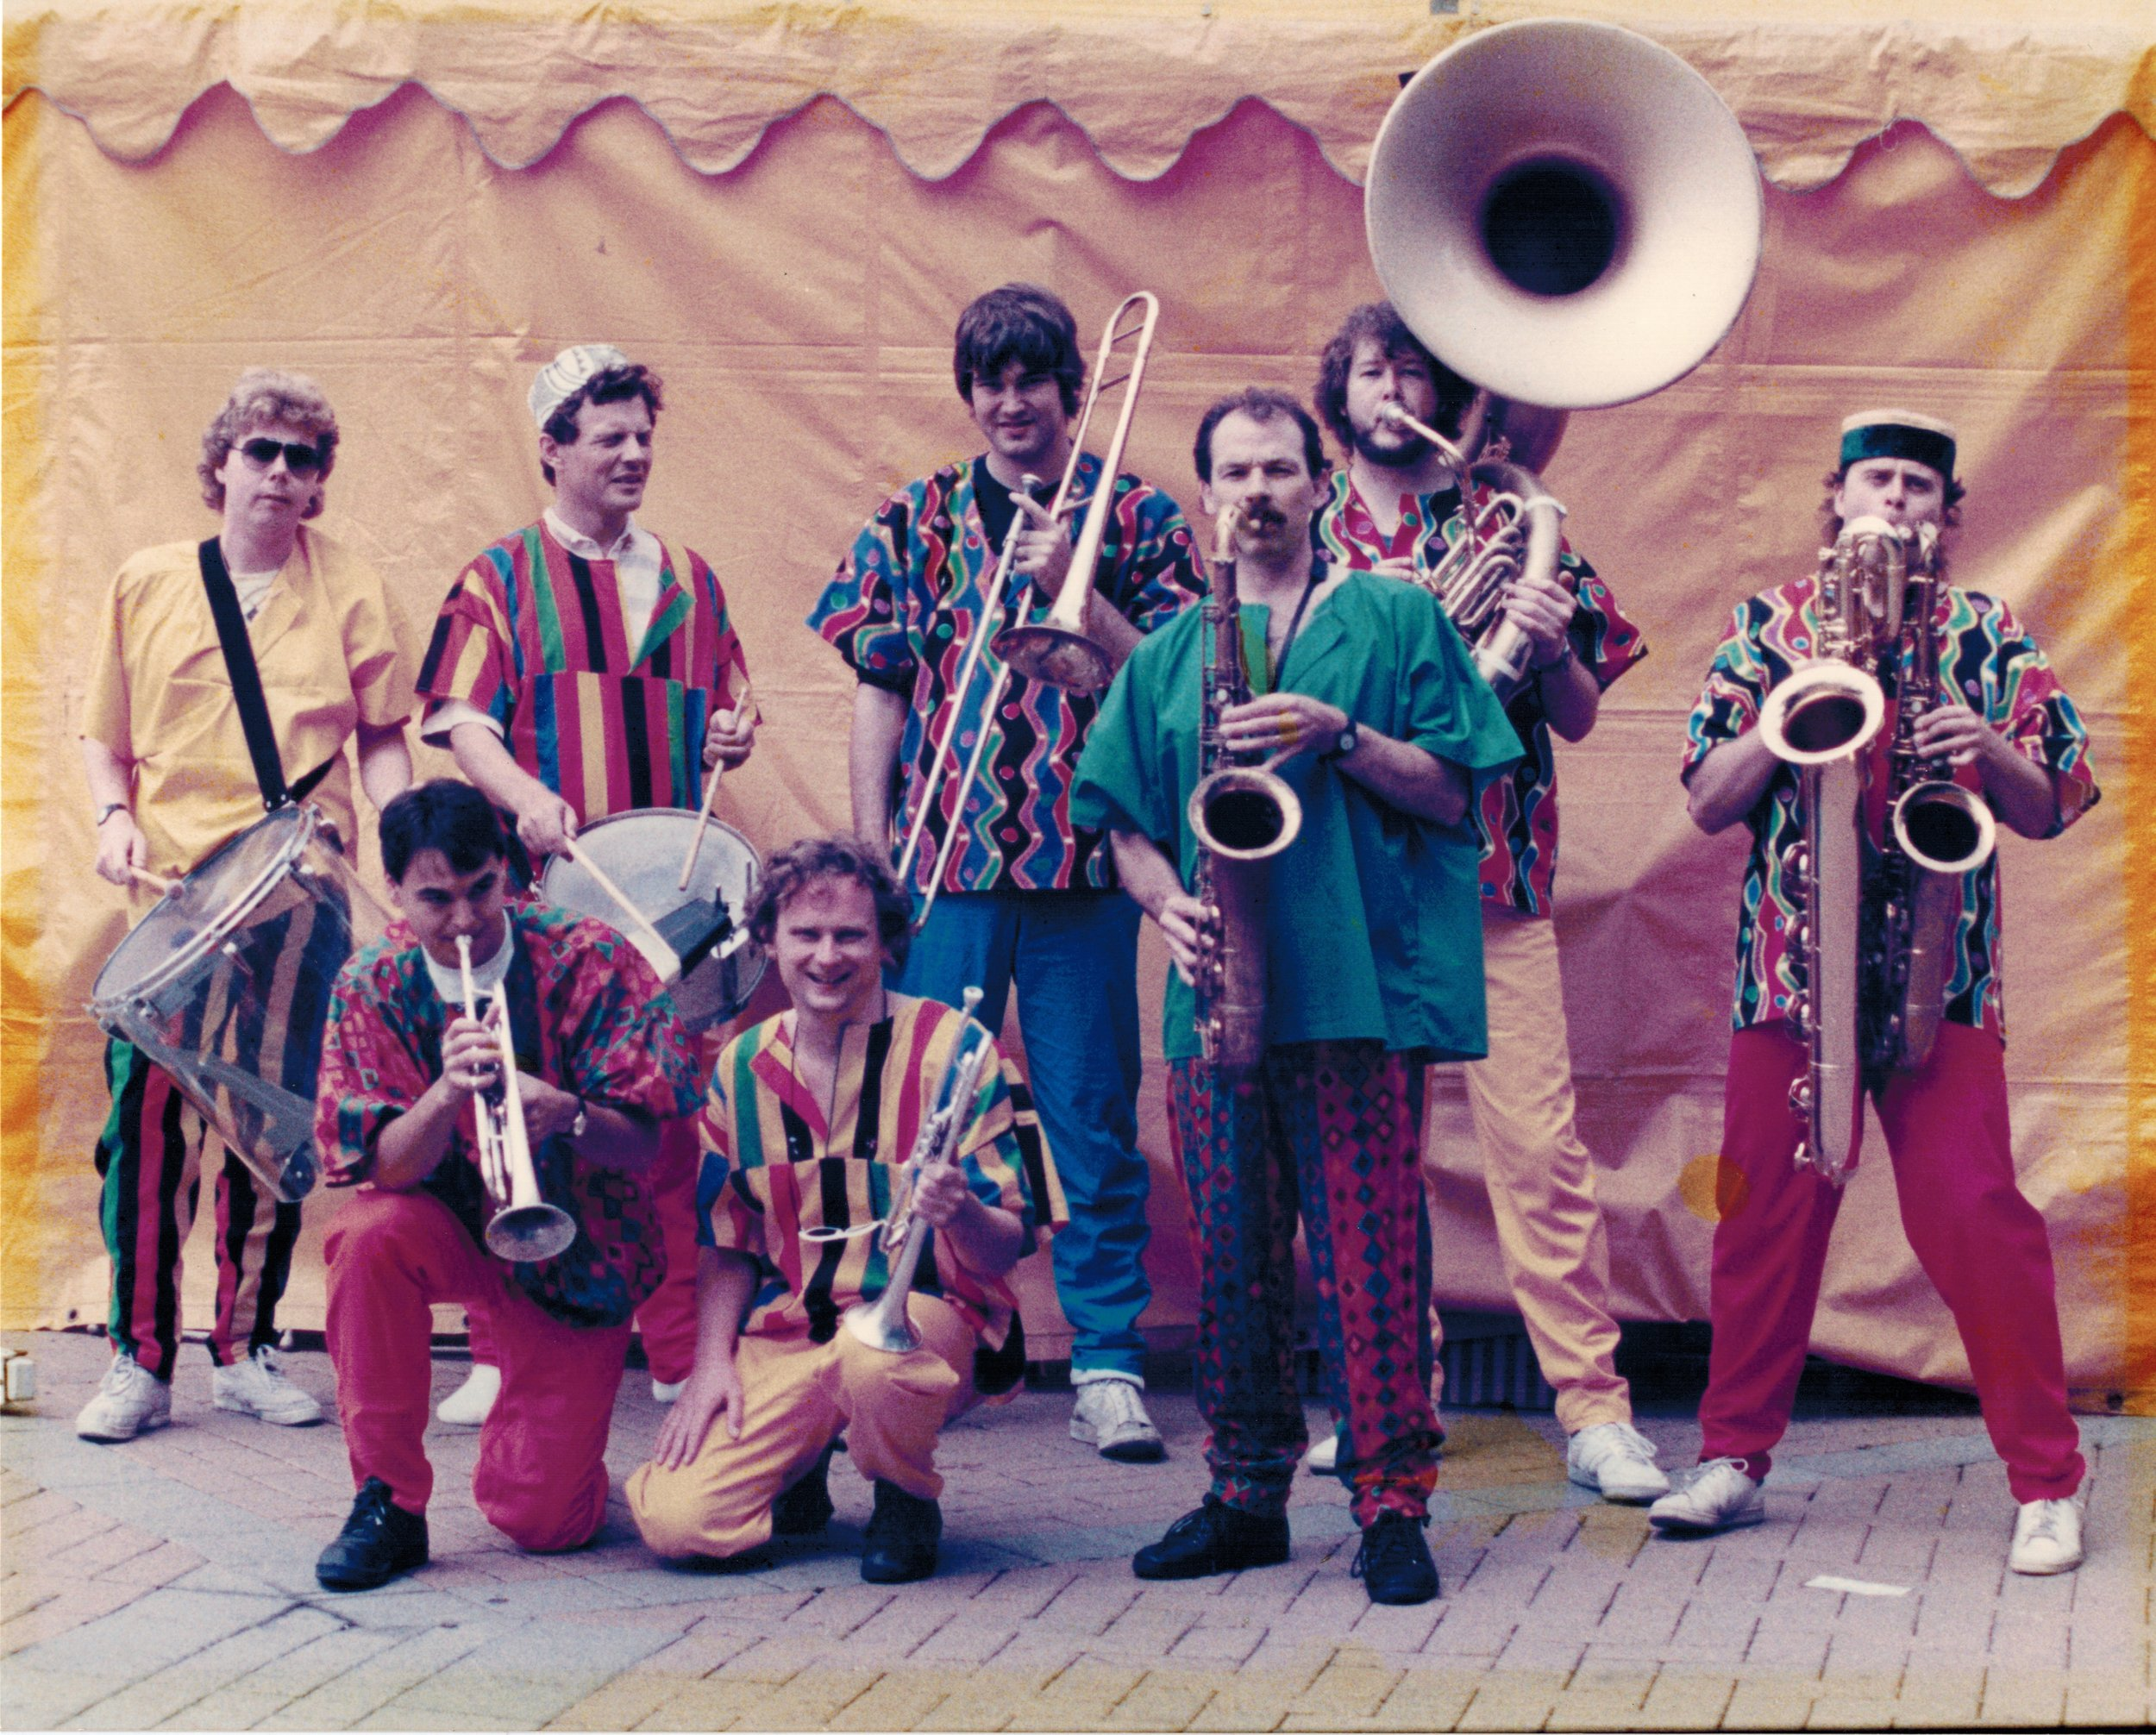 BRASS ROOTS in parade garb 1989